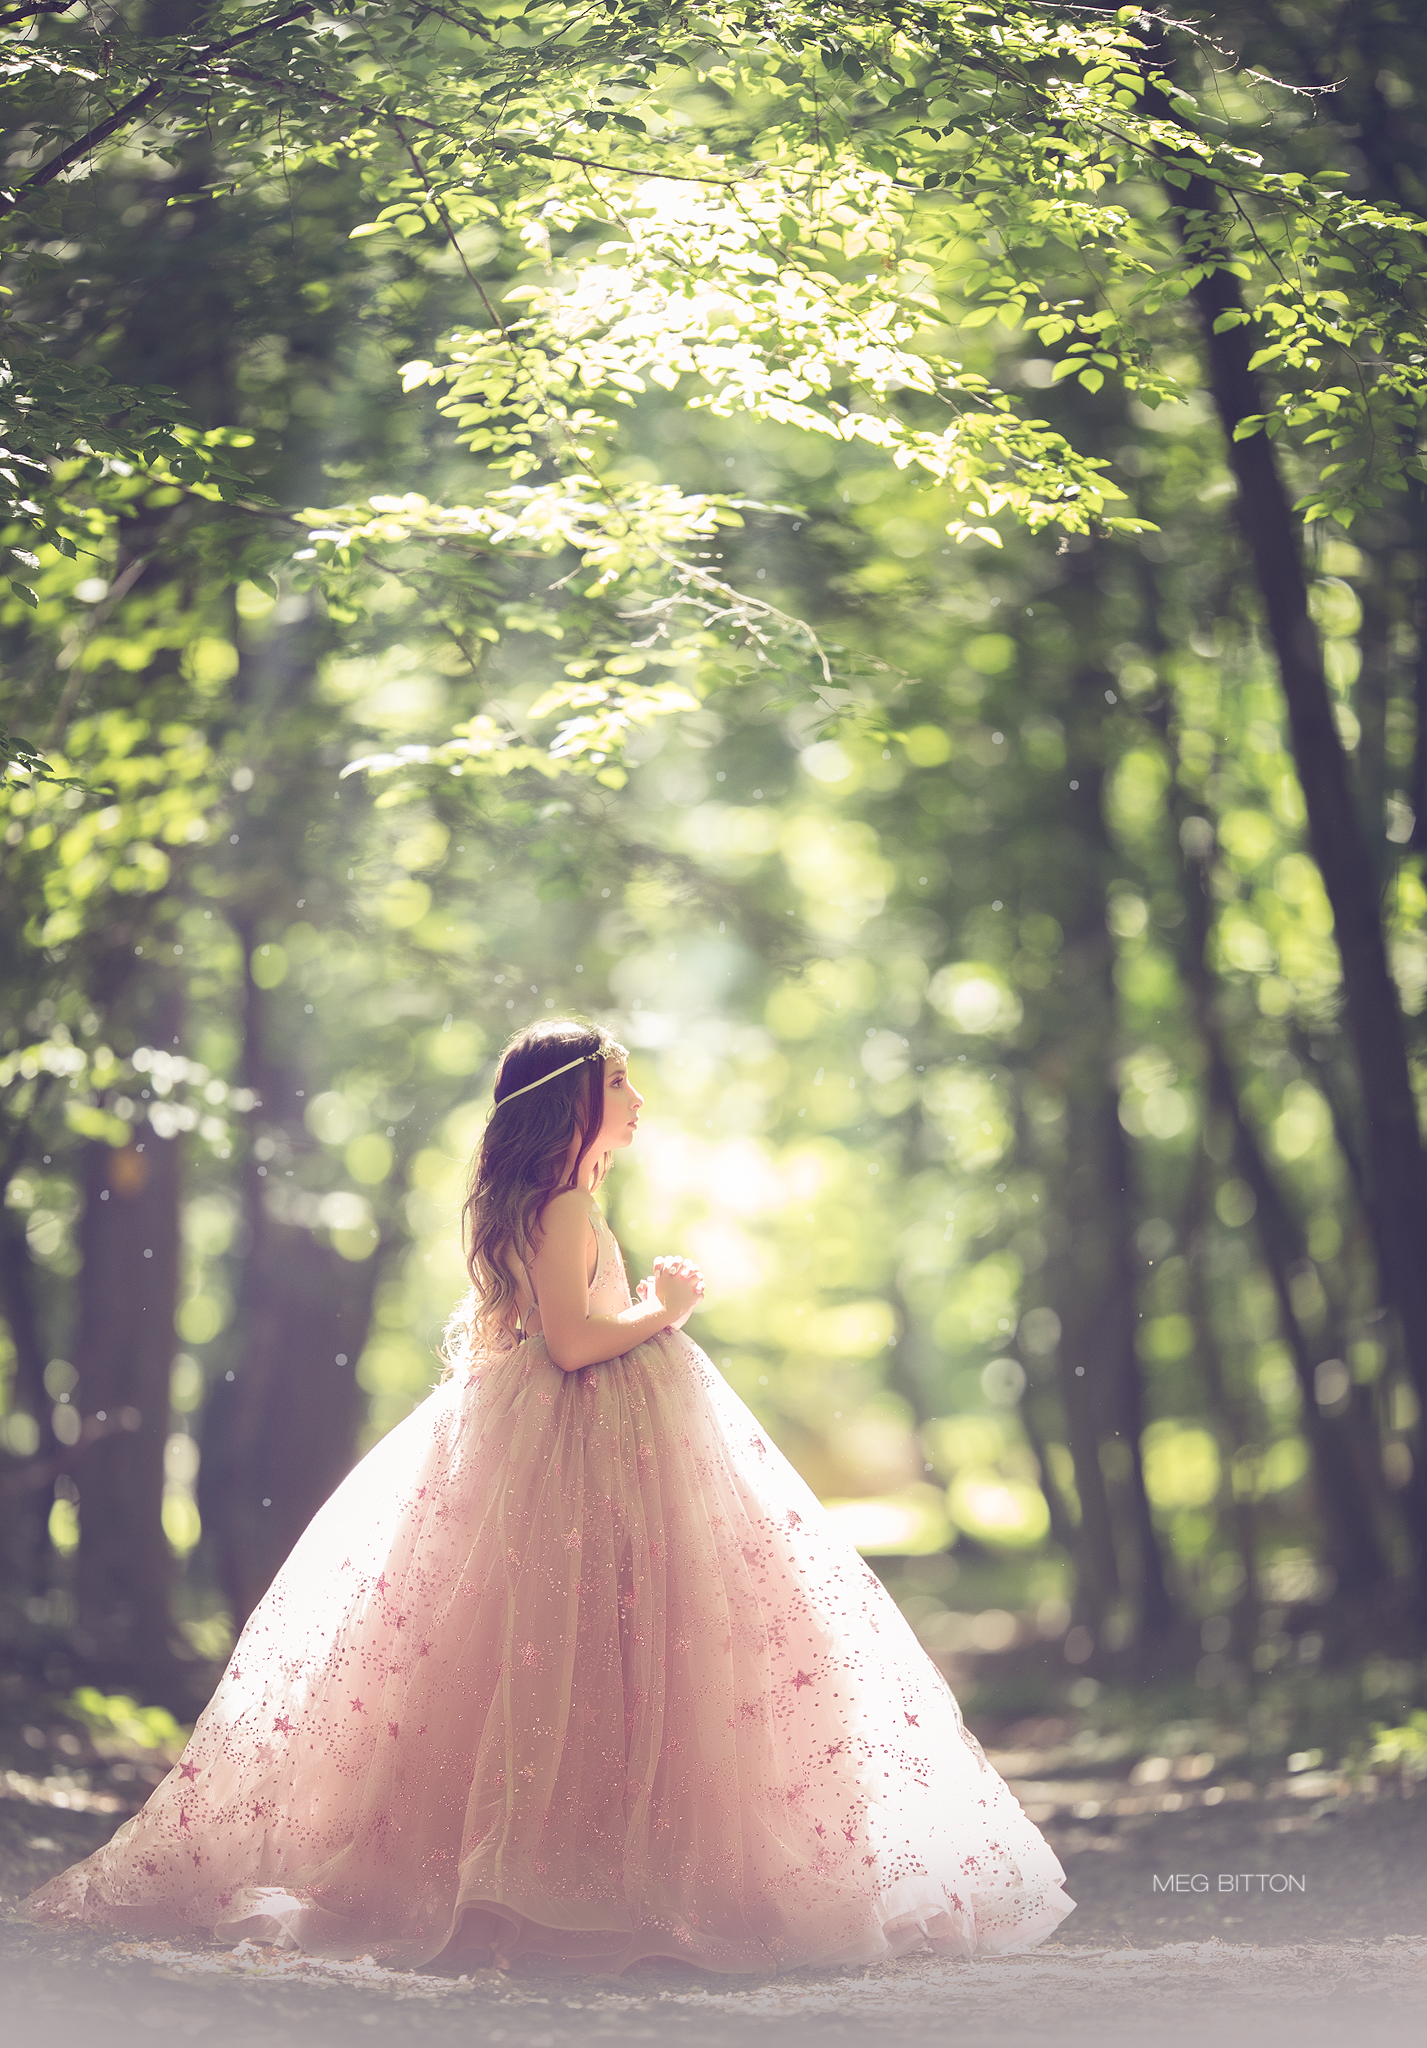 Luminous Silver and Pink Gown